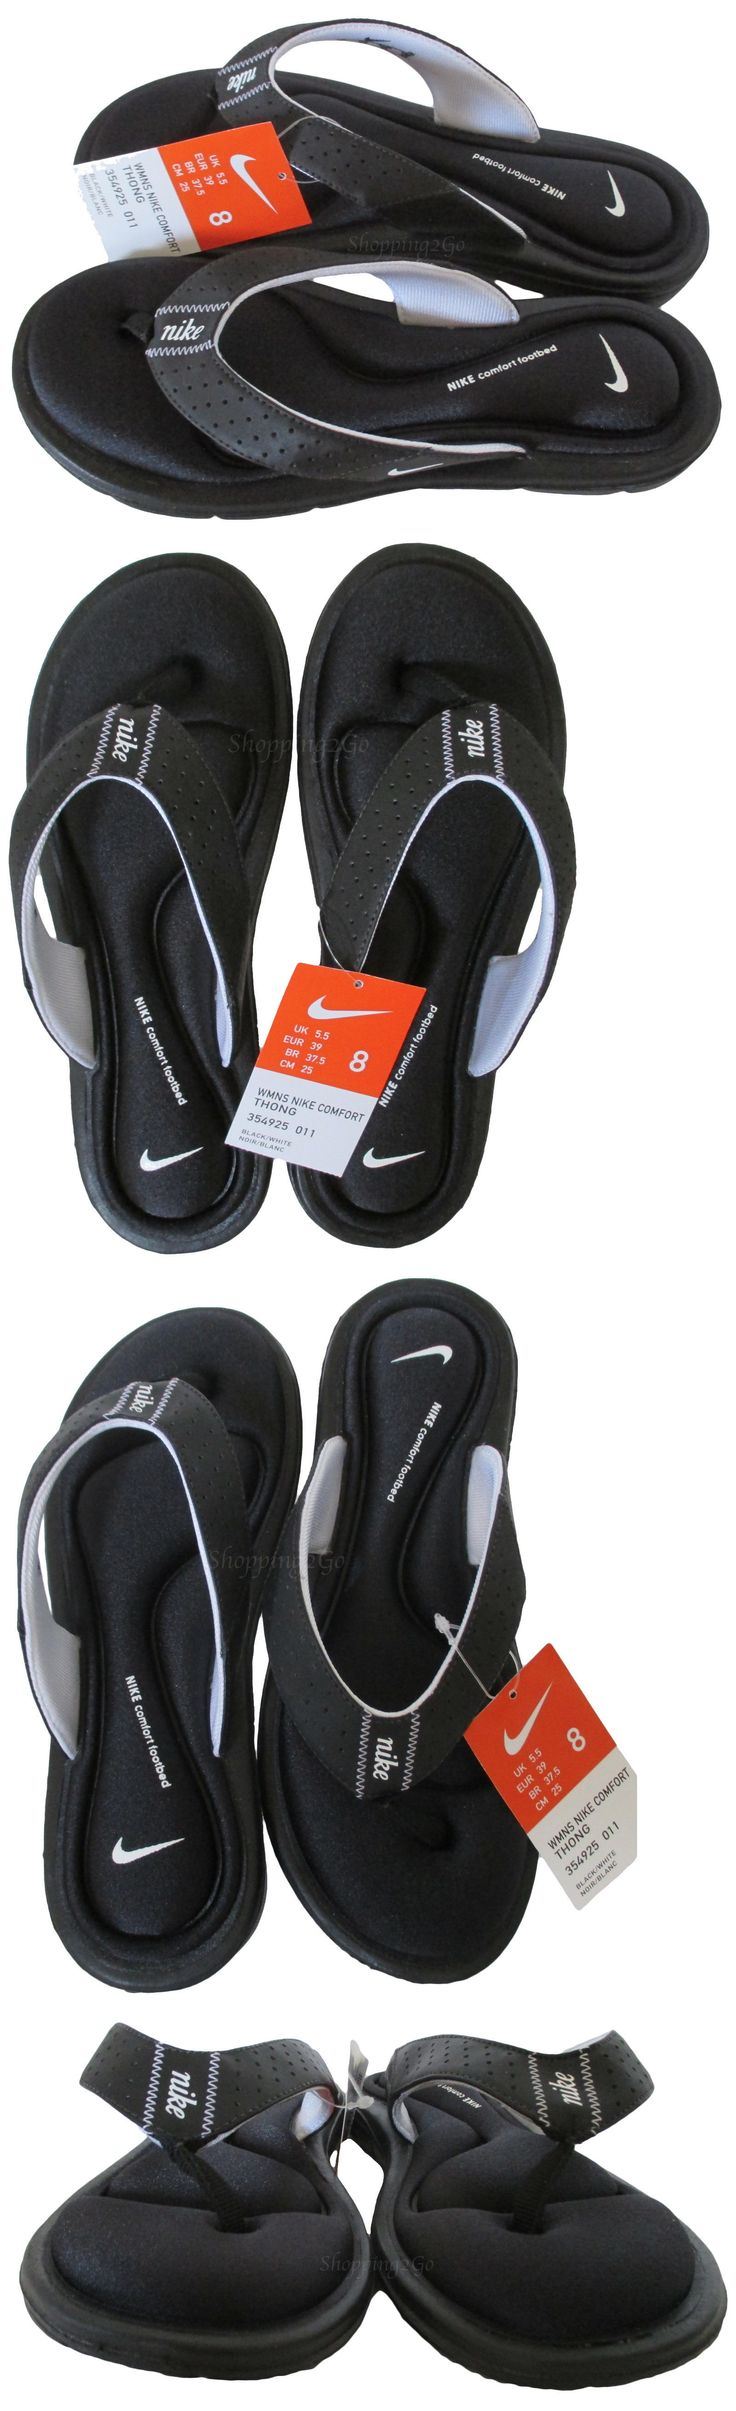 Sandals and Flip Flops 62107: New! Women S Nike Comfort Thong Sandals Black White Size 8 -> BUY IT NOW ONLY: $31.97 on eBay!